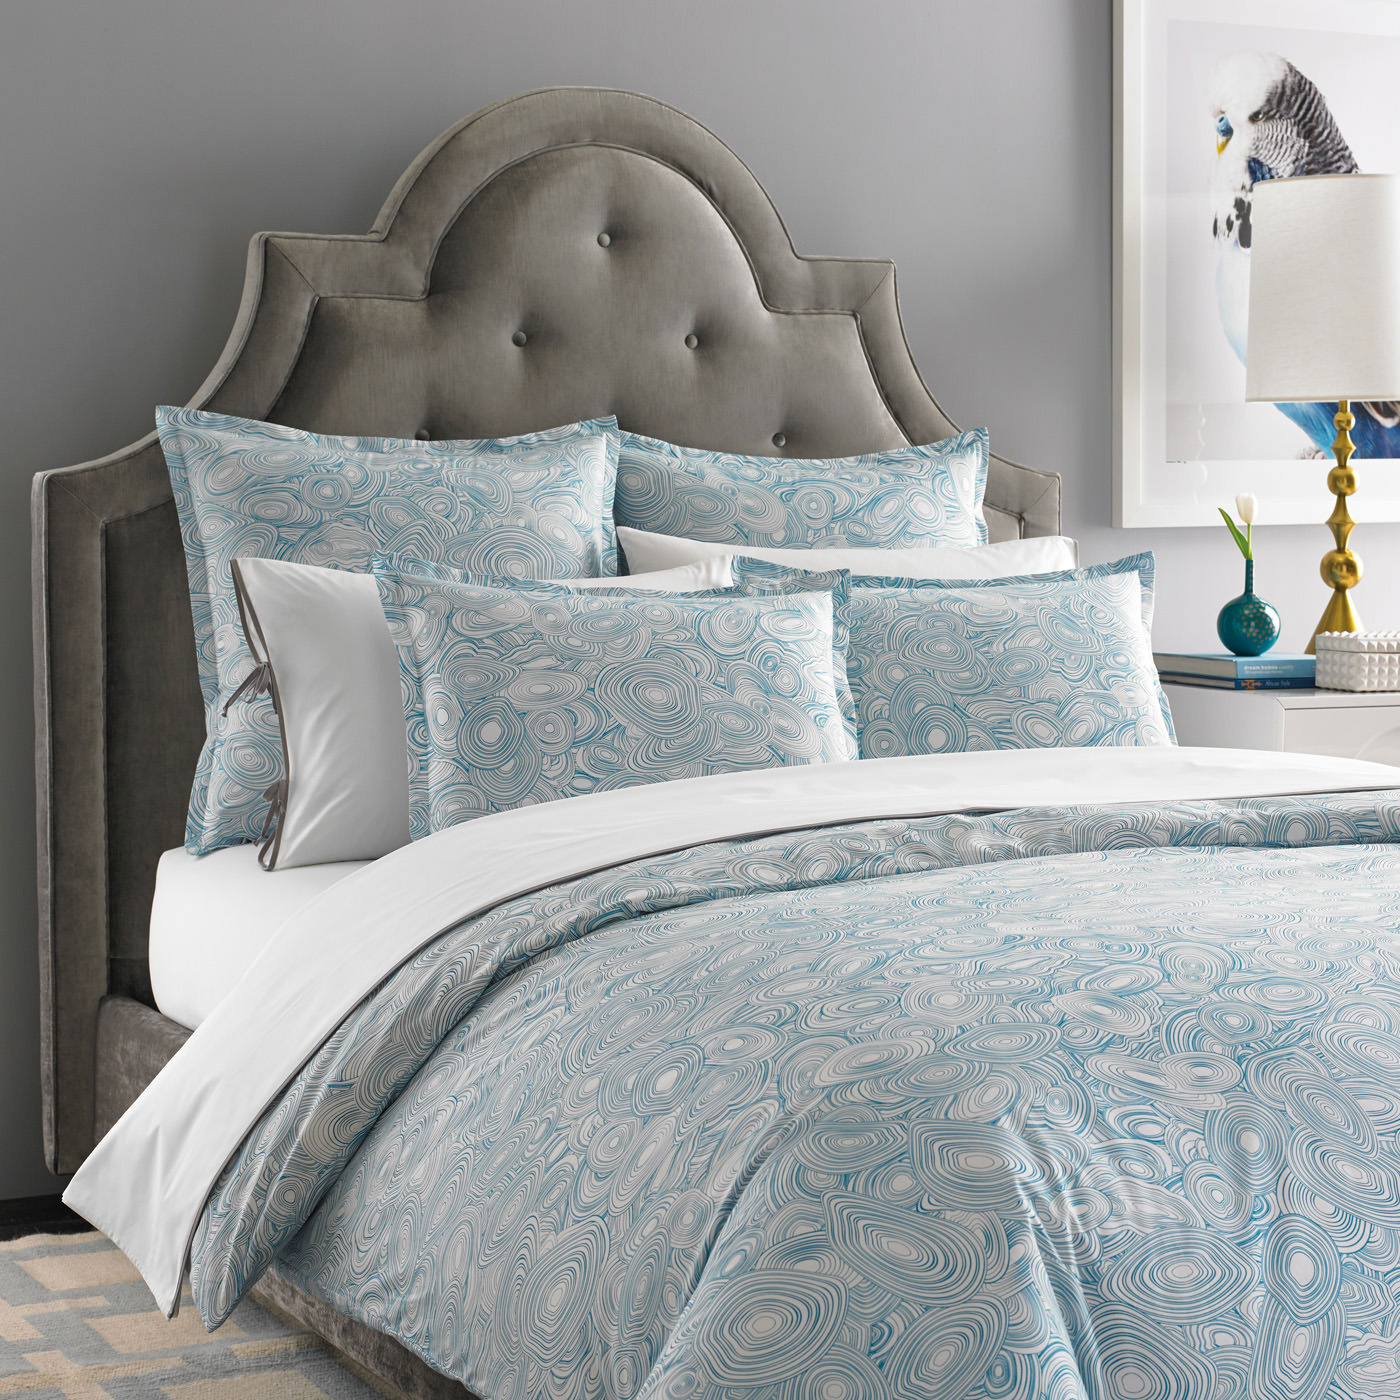 Jonathan Adler Bedding Sets for Chic Bedrooms